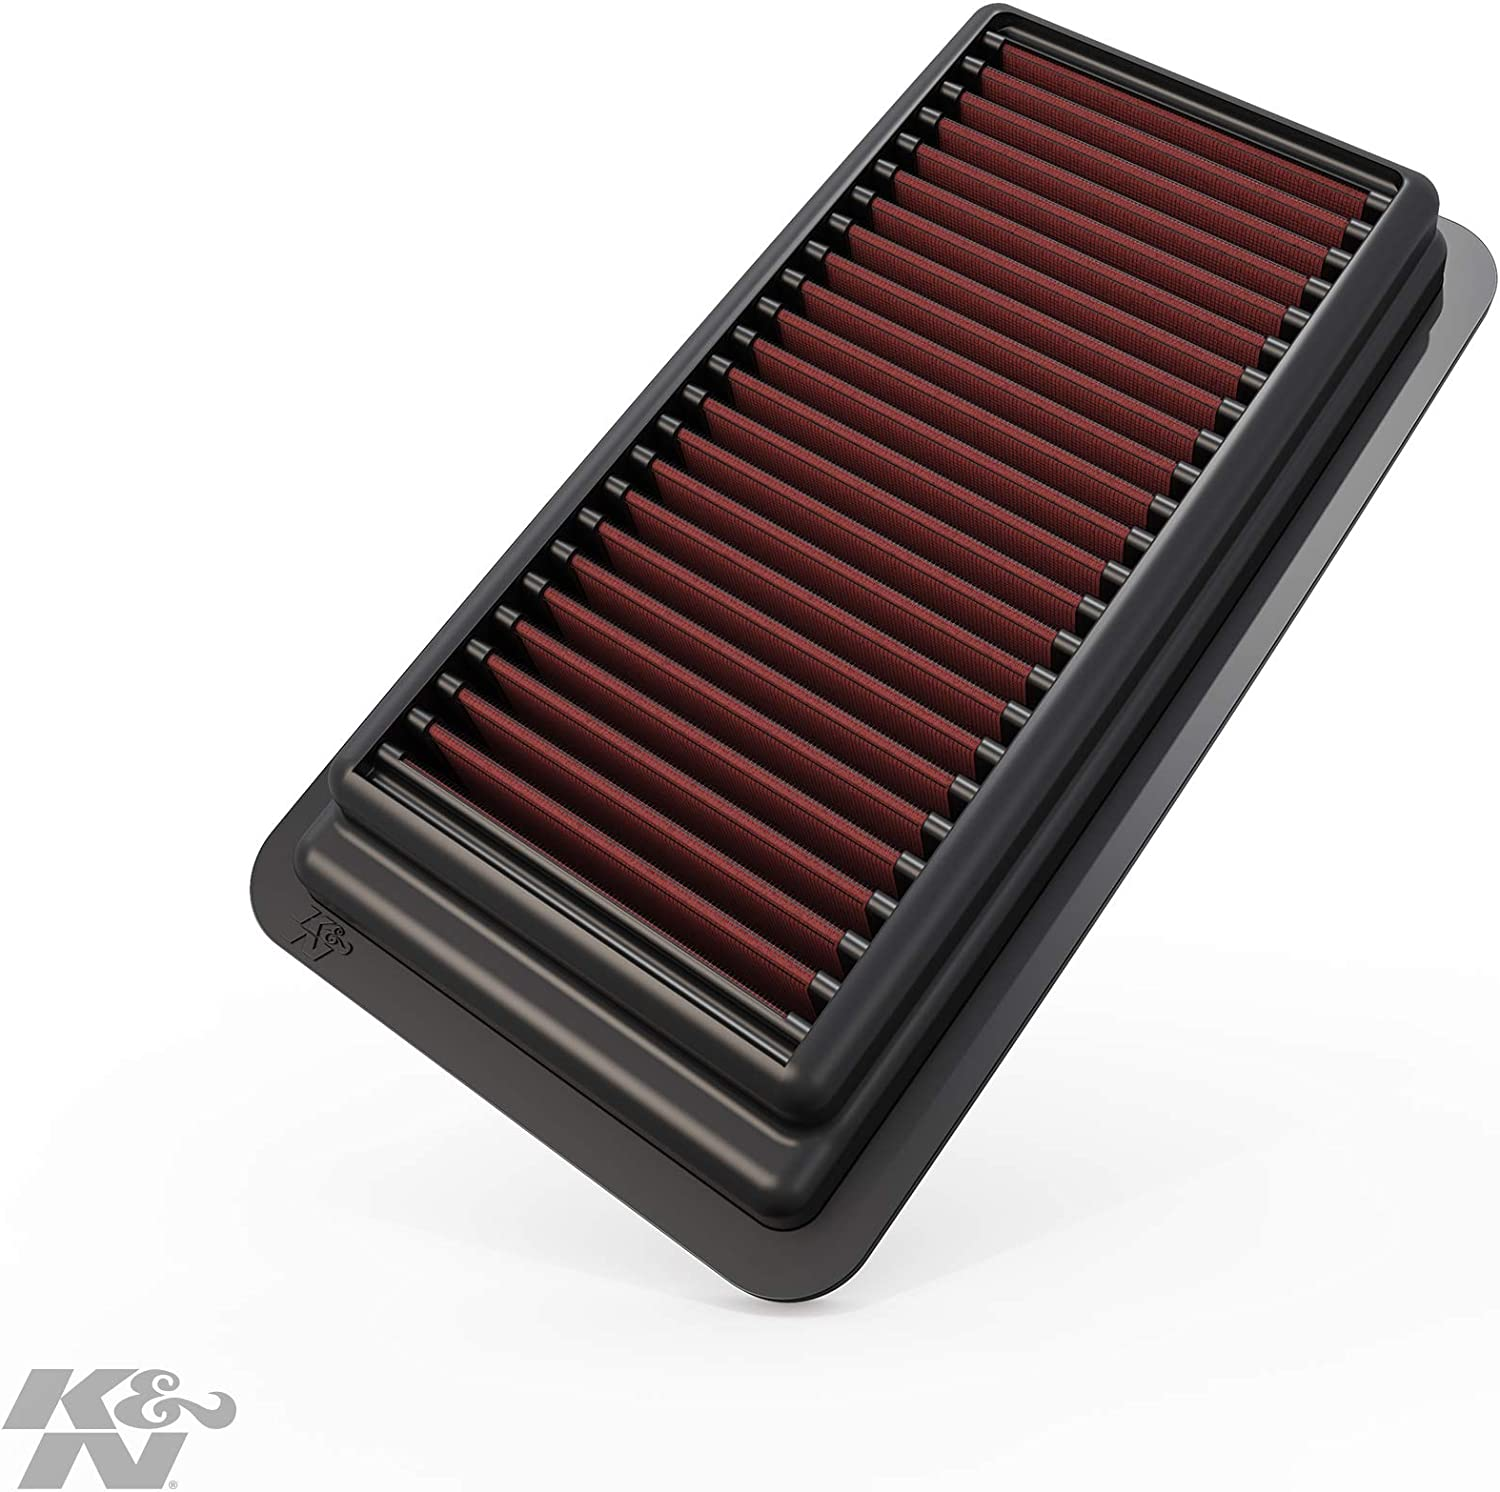 K/&N Filters 33-5045 Air Filter Fits 2016-2018 Honda Civic 2.0L